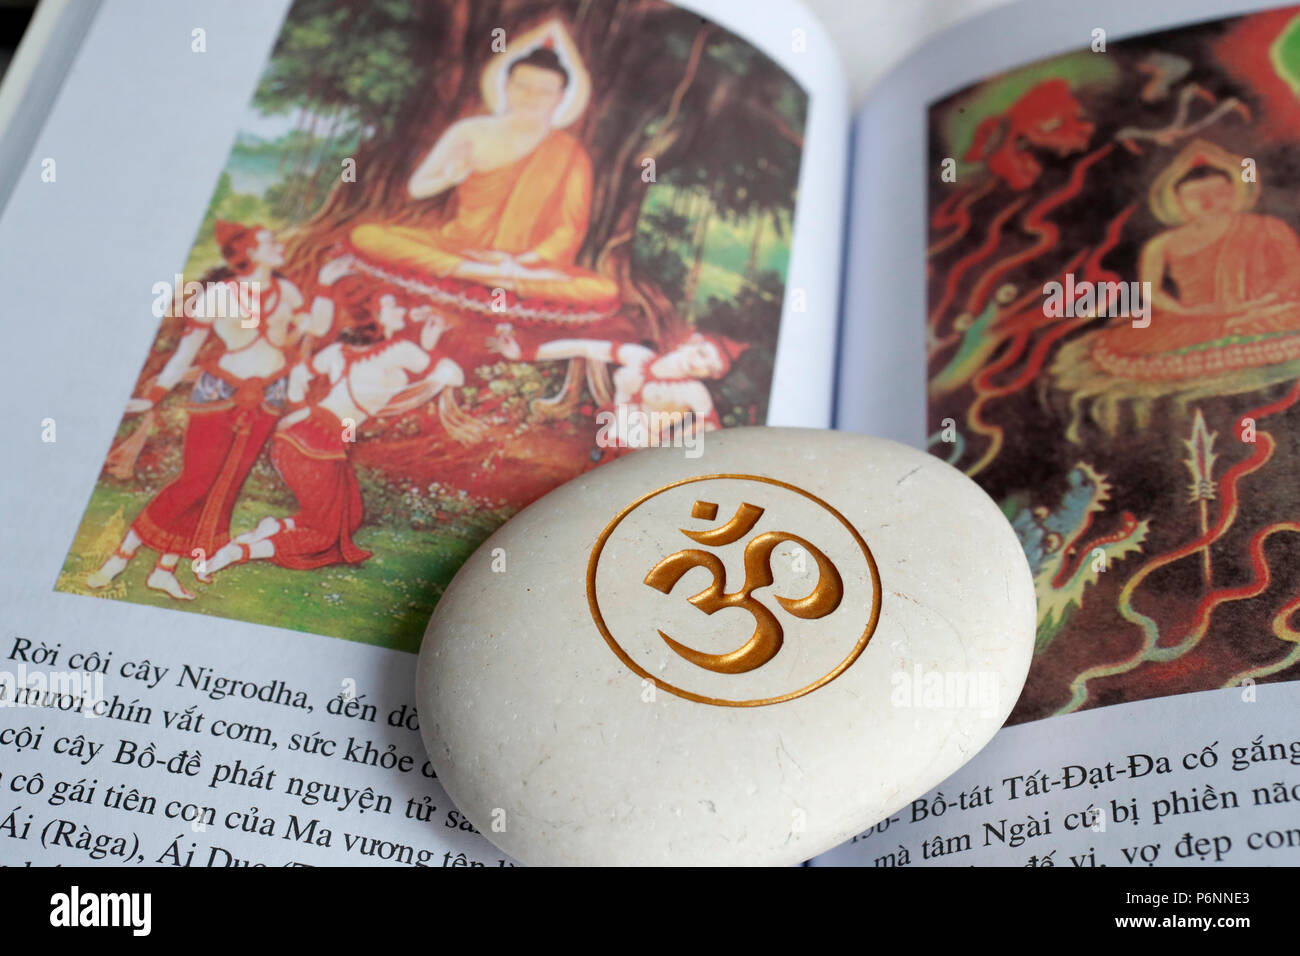 The Om or Aum symbol of Hinduism and Buddhism on a white stone. Book of the life of Buddha. - Stock Image